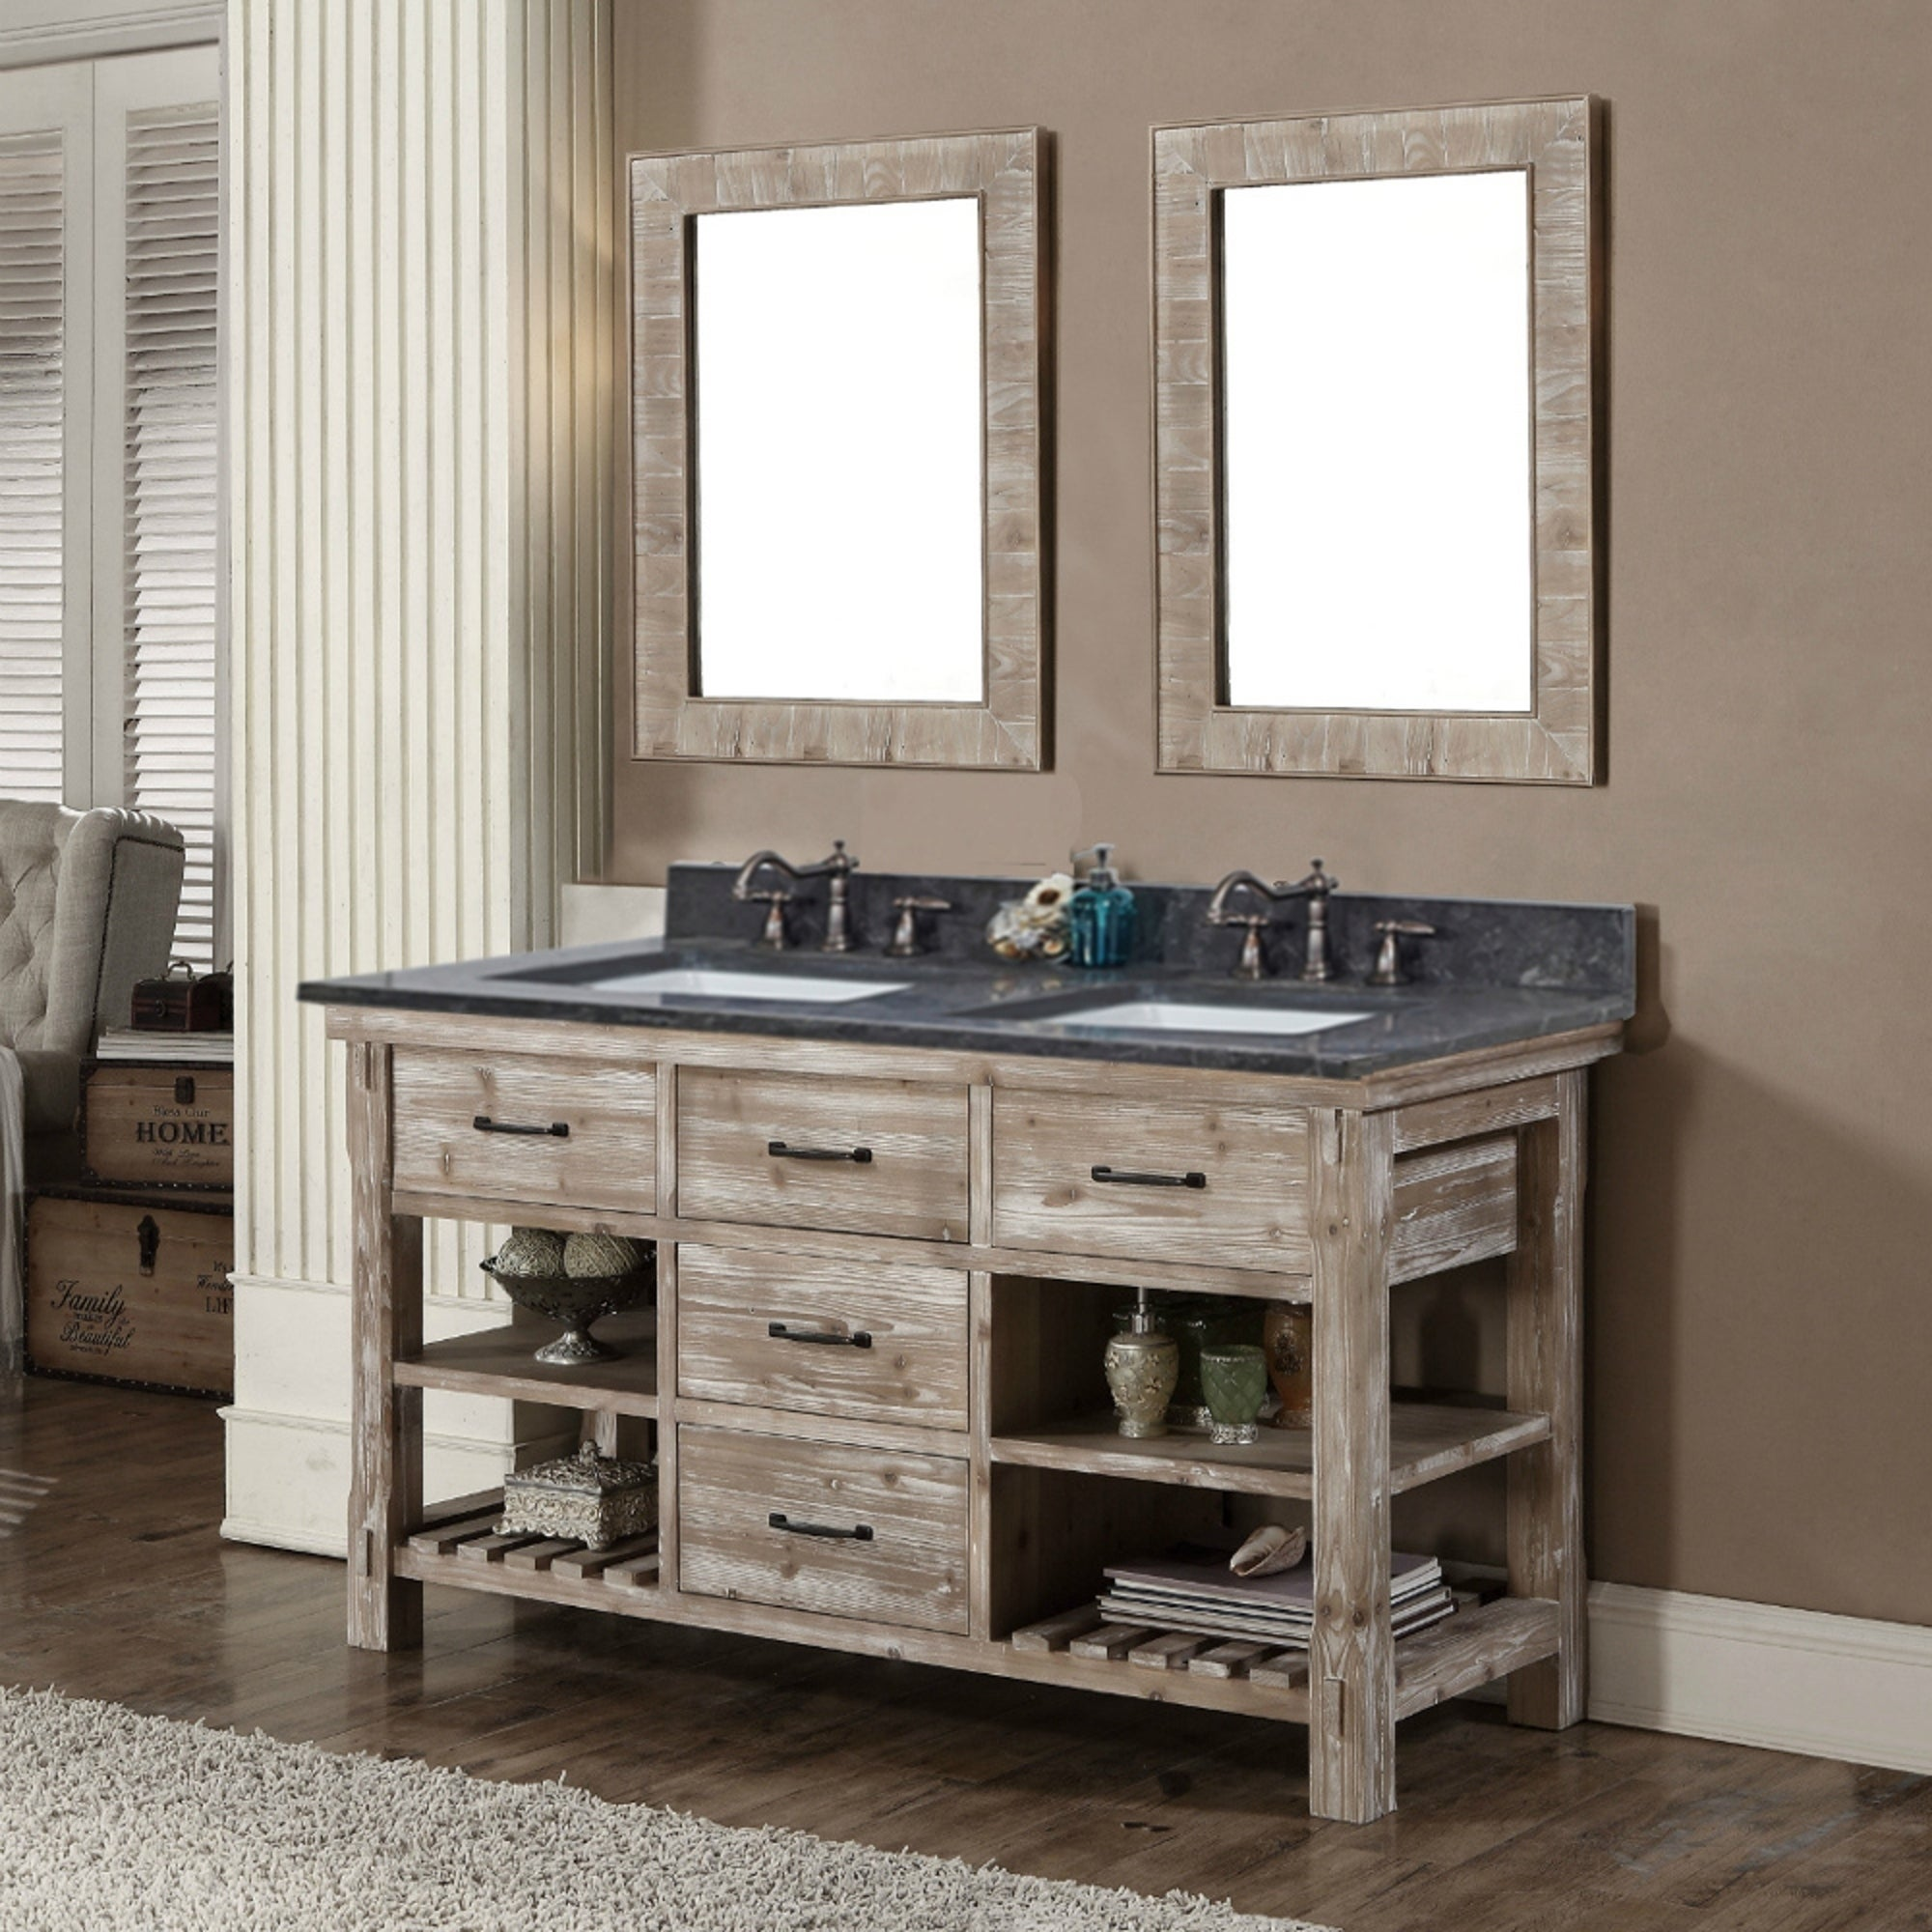 Double Bathroom Vanity | Shop Rustic Style 60 Inch Double Sink Bathroom Vanity With Dark